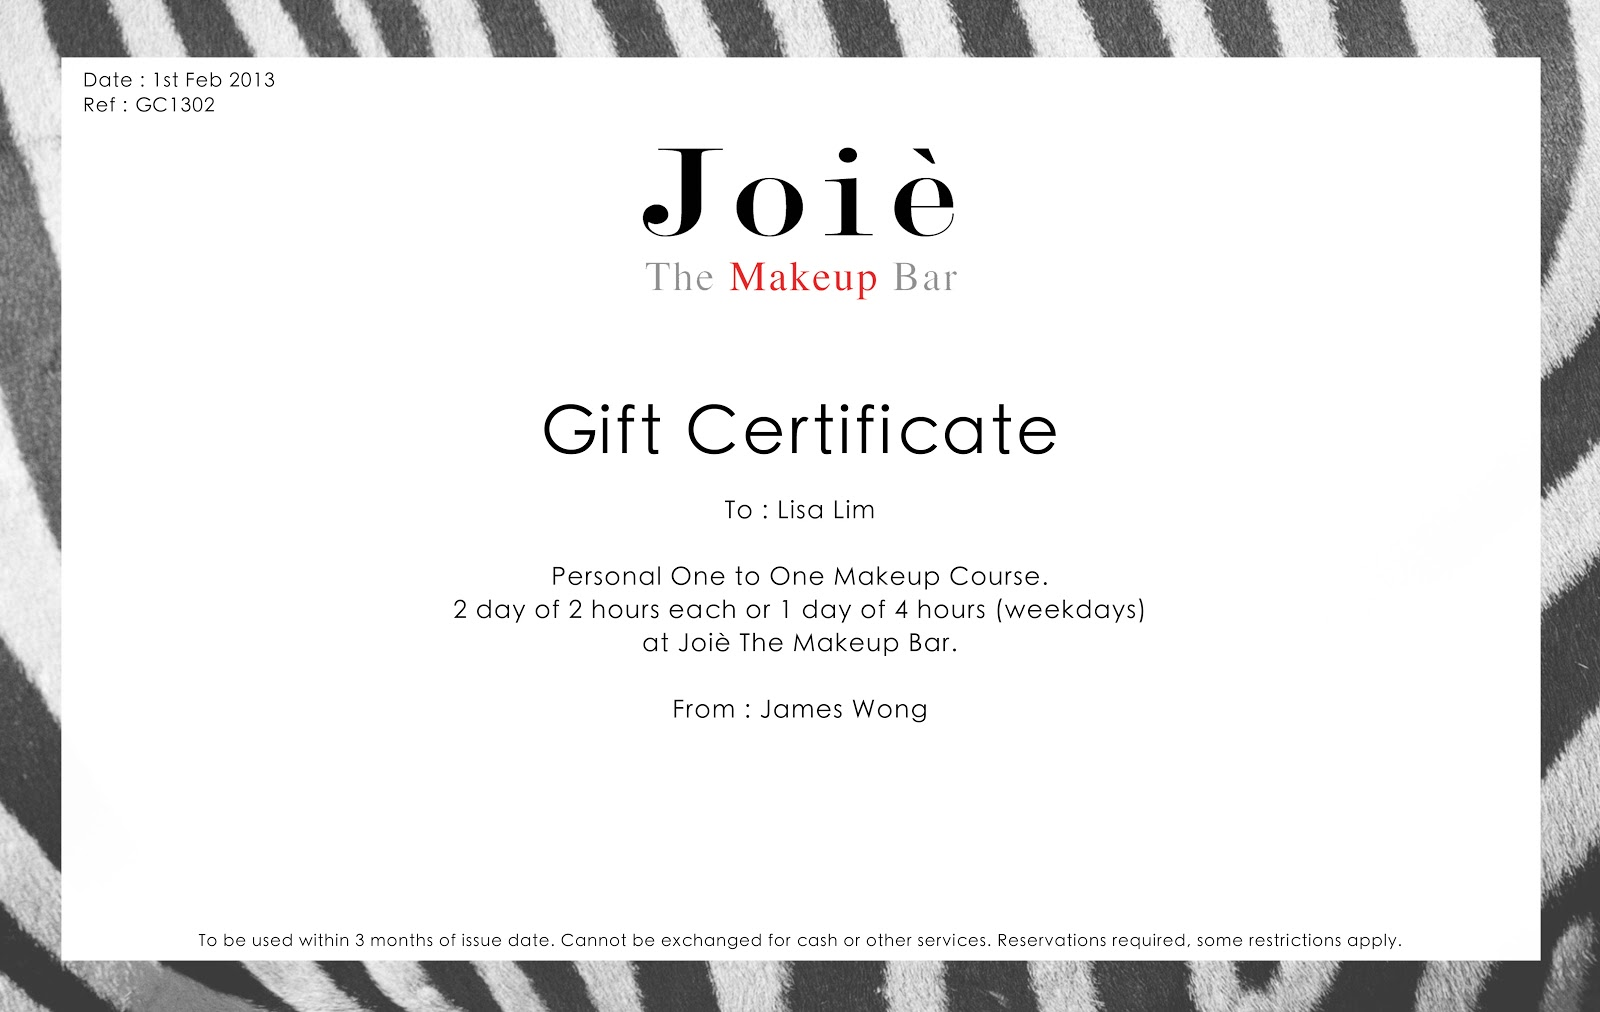 Make Up Gift Certificate Template Iwantingsarticle Media Sports